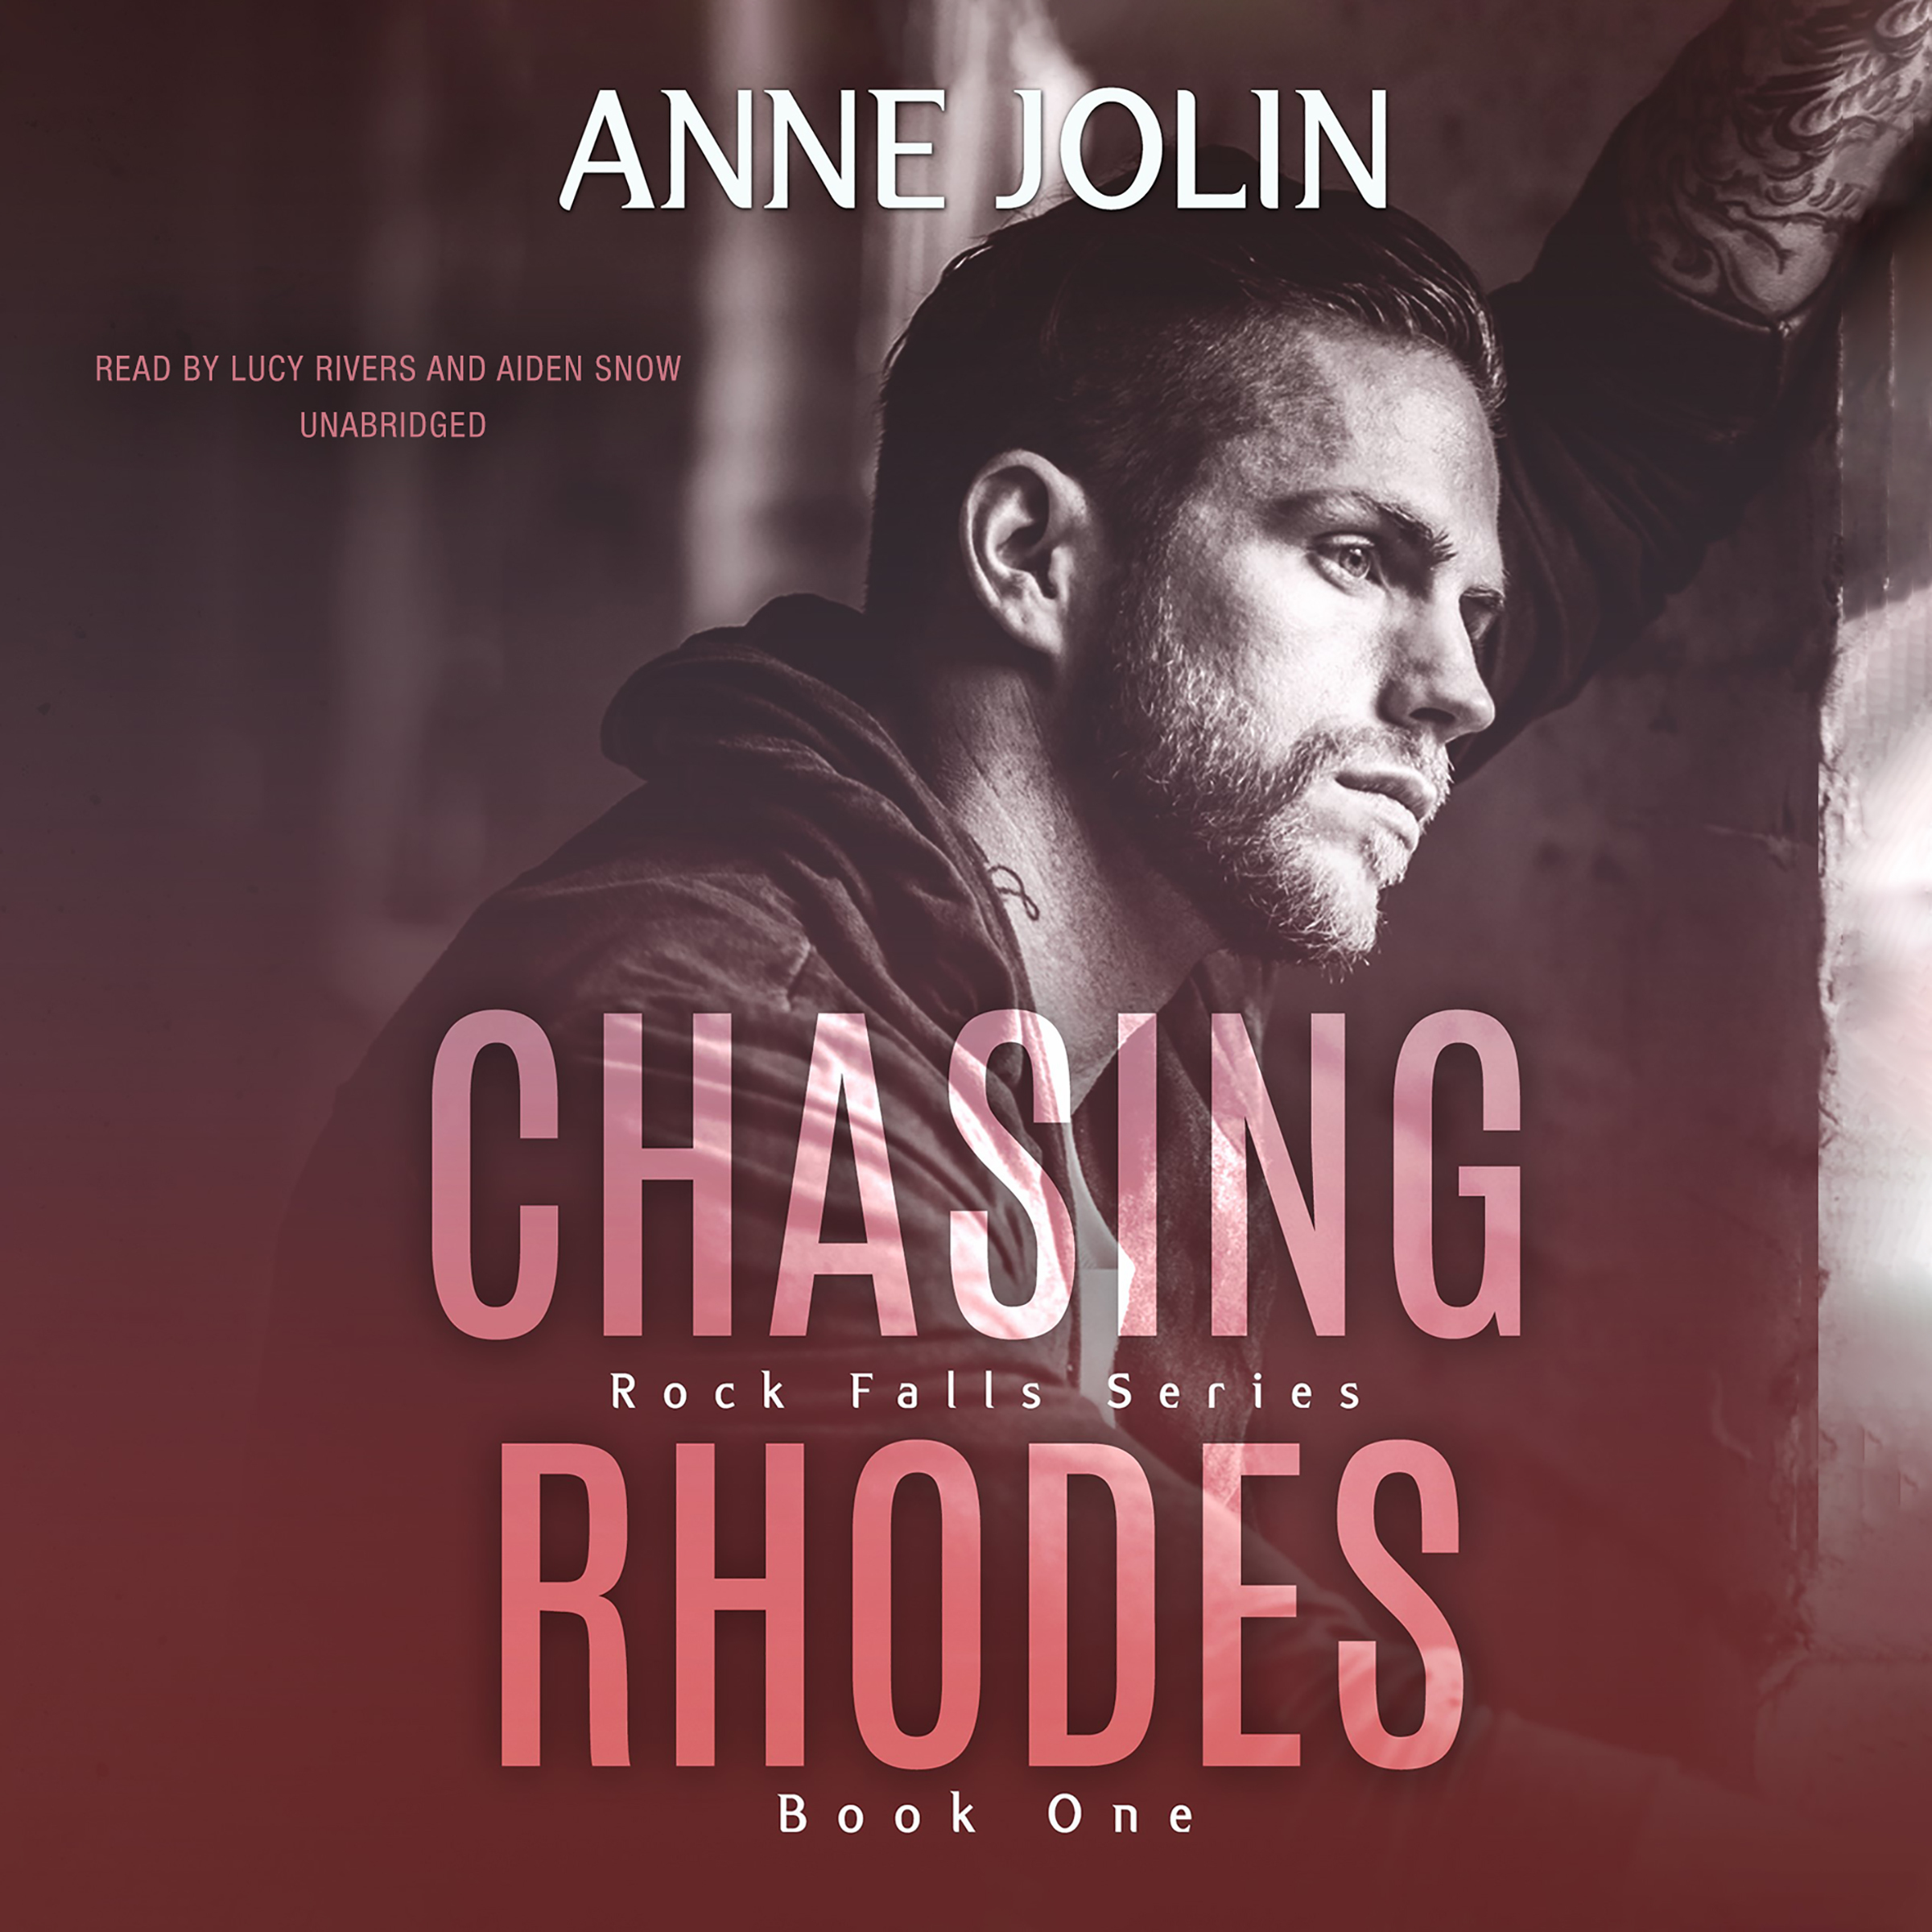 Printable Chasing Rhodes Audiobook Cover Art